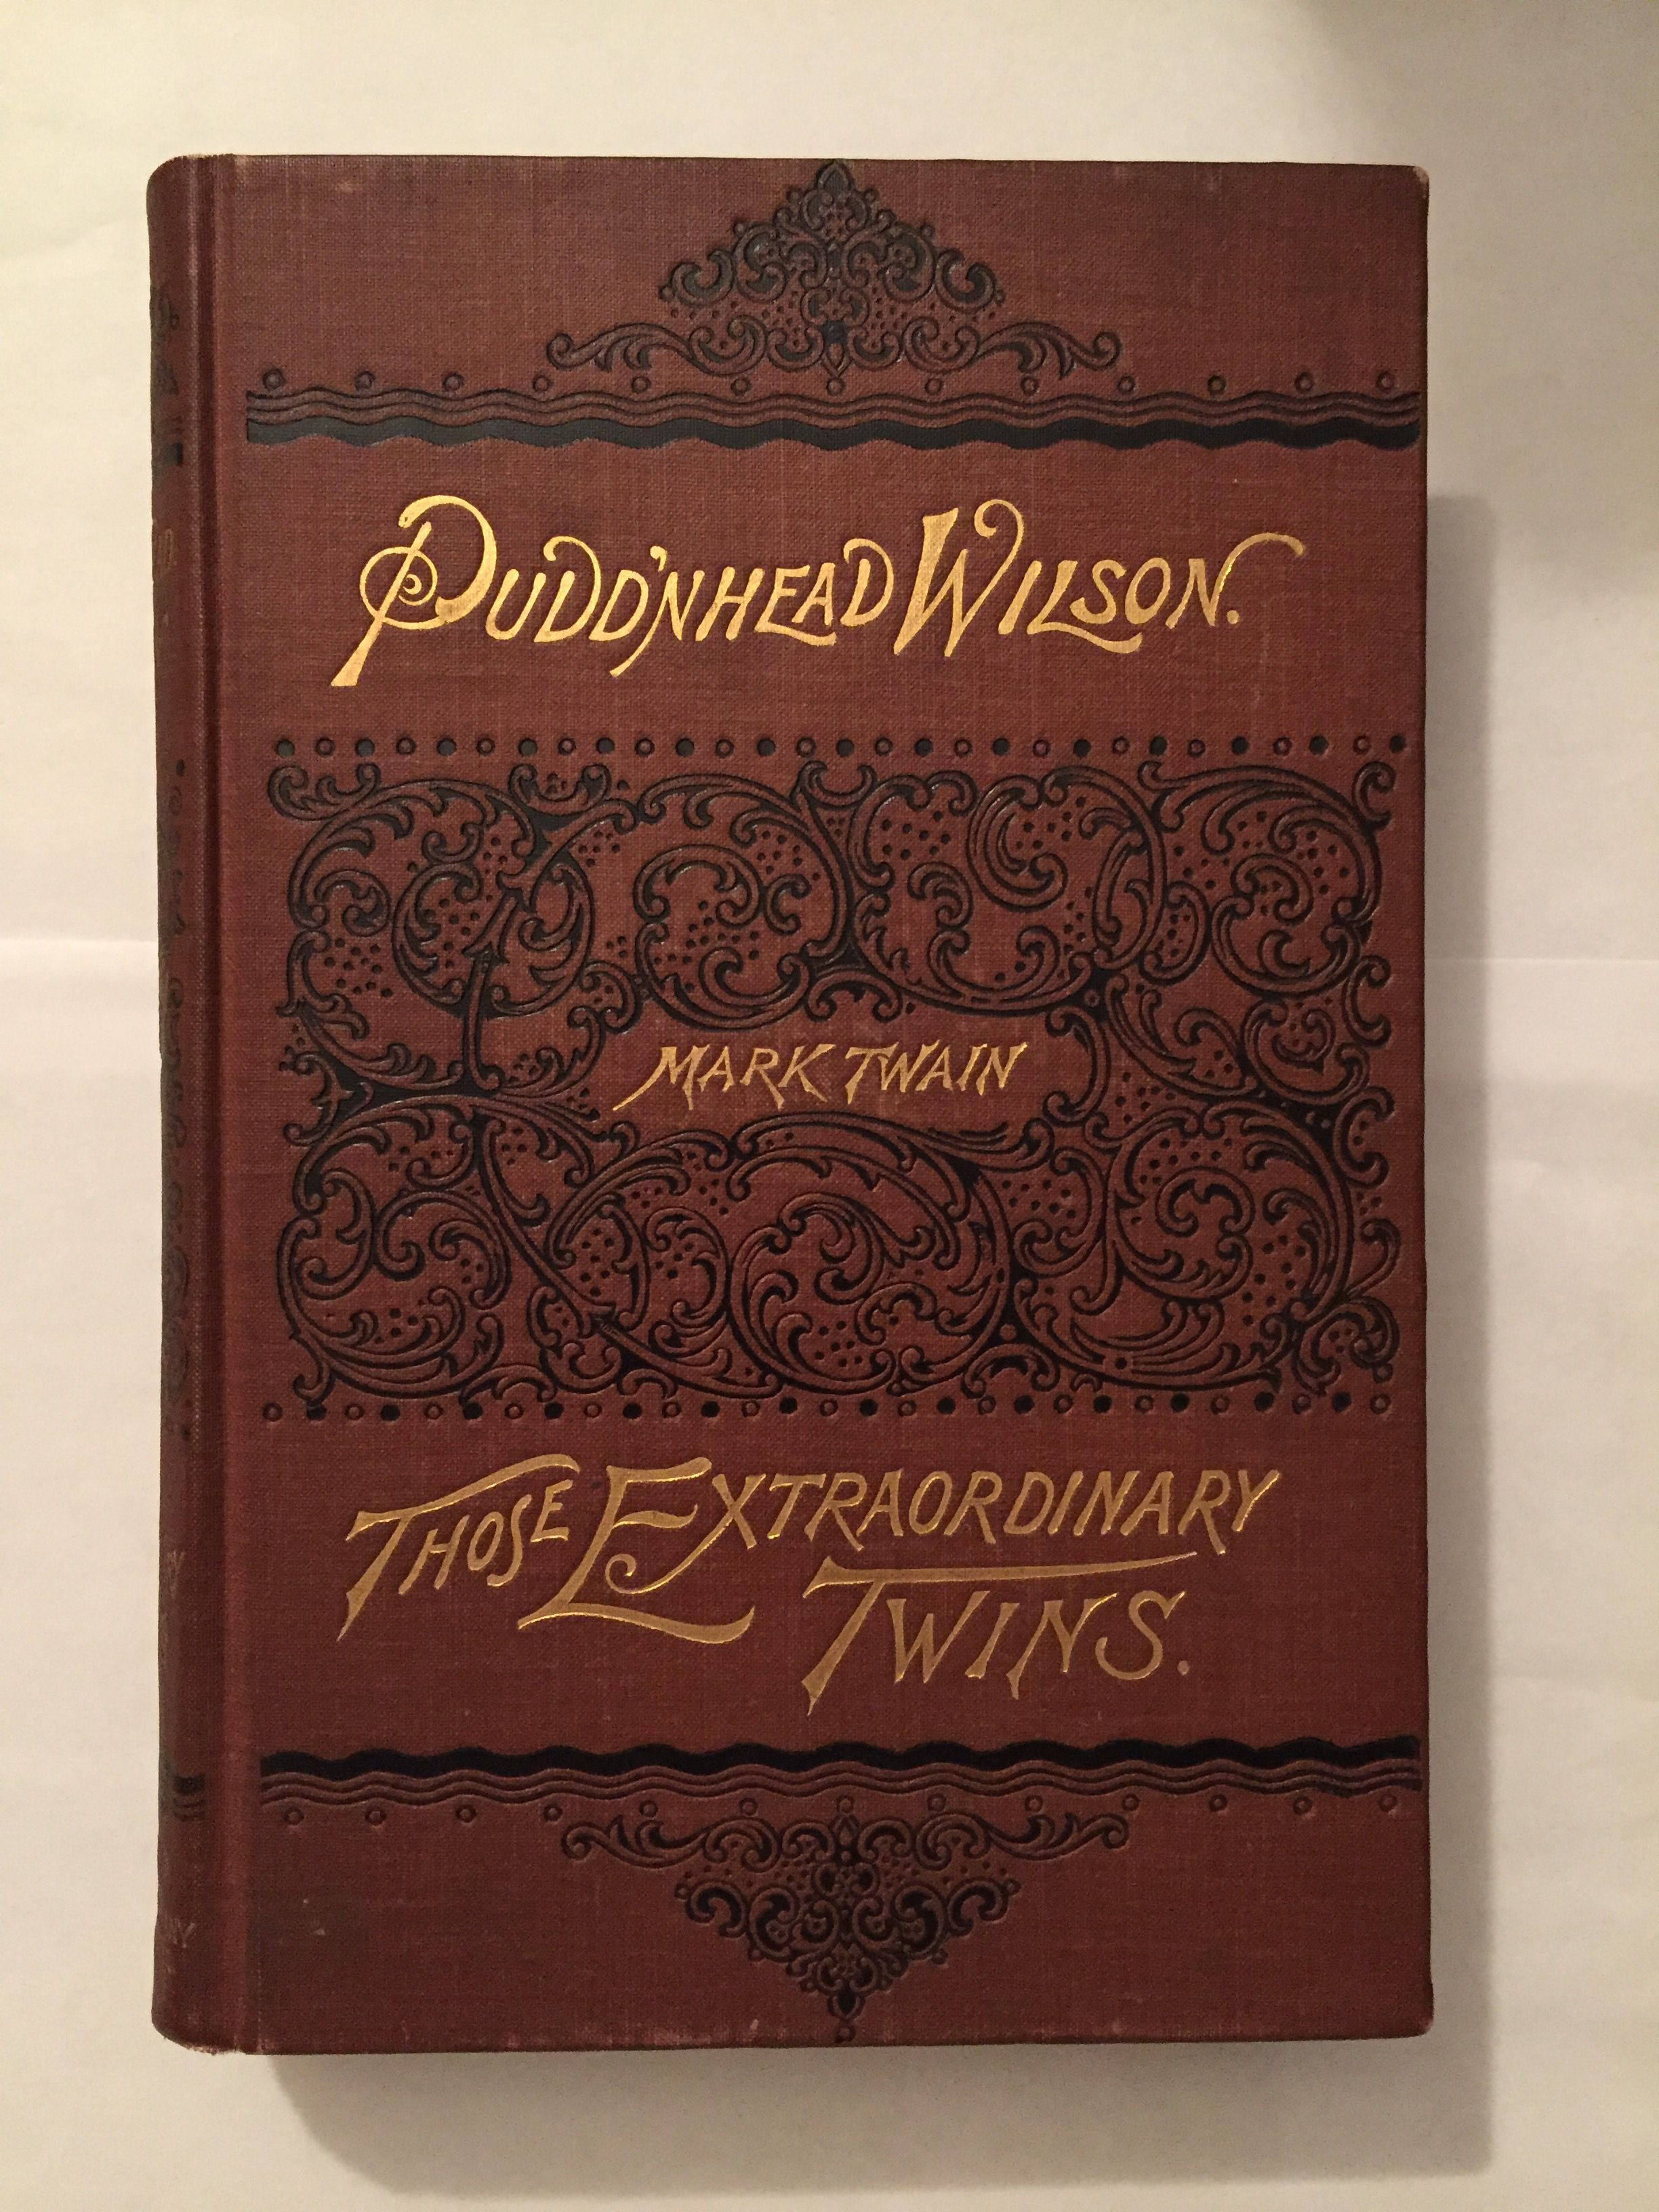 an analysis of the book puddnhead wilson by mark twain Pudd'nhead wilson: mark twain - full audiobook by mark twain about the book: pudd'nhead wilson (1894) is a novel by american writer mark twain its central.